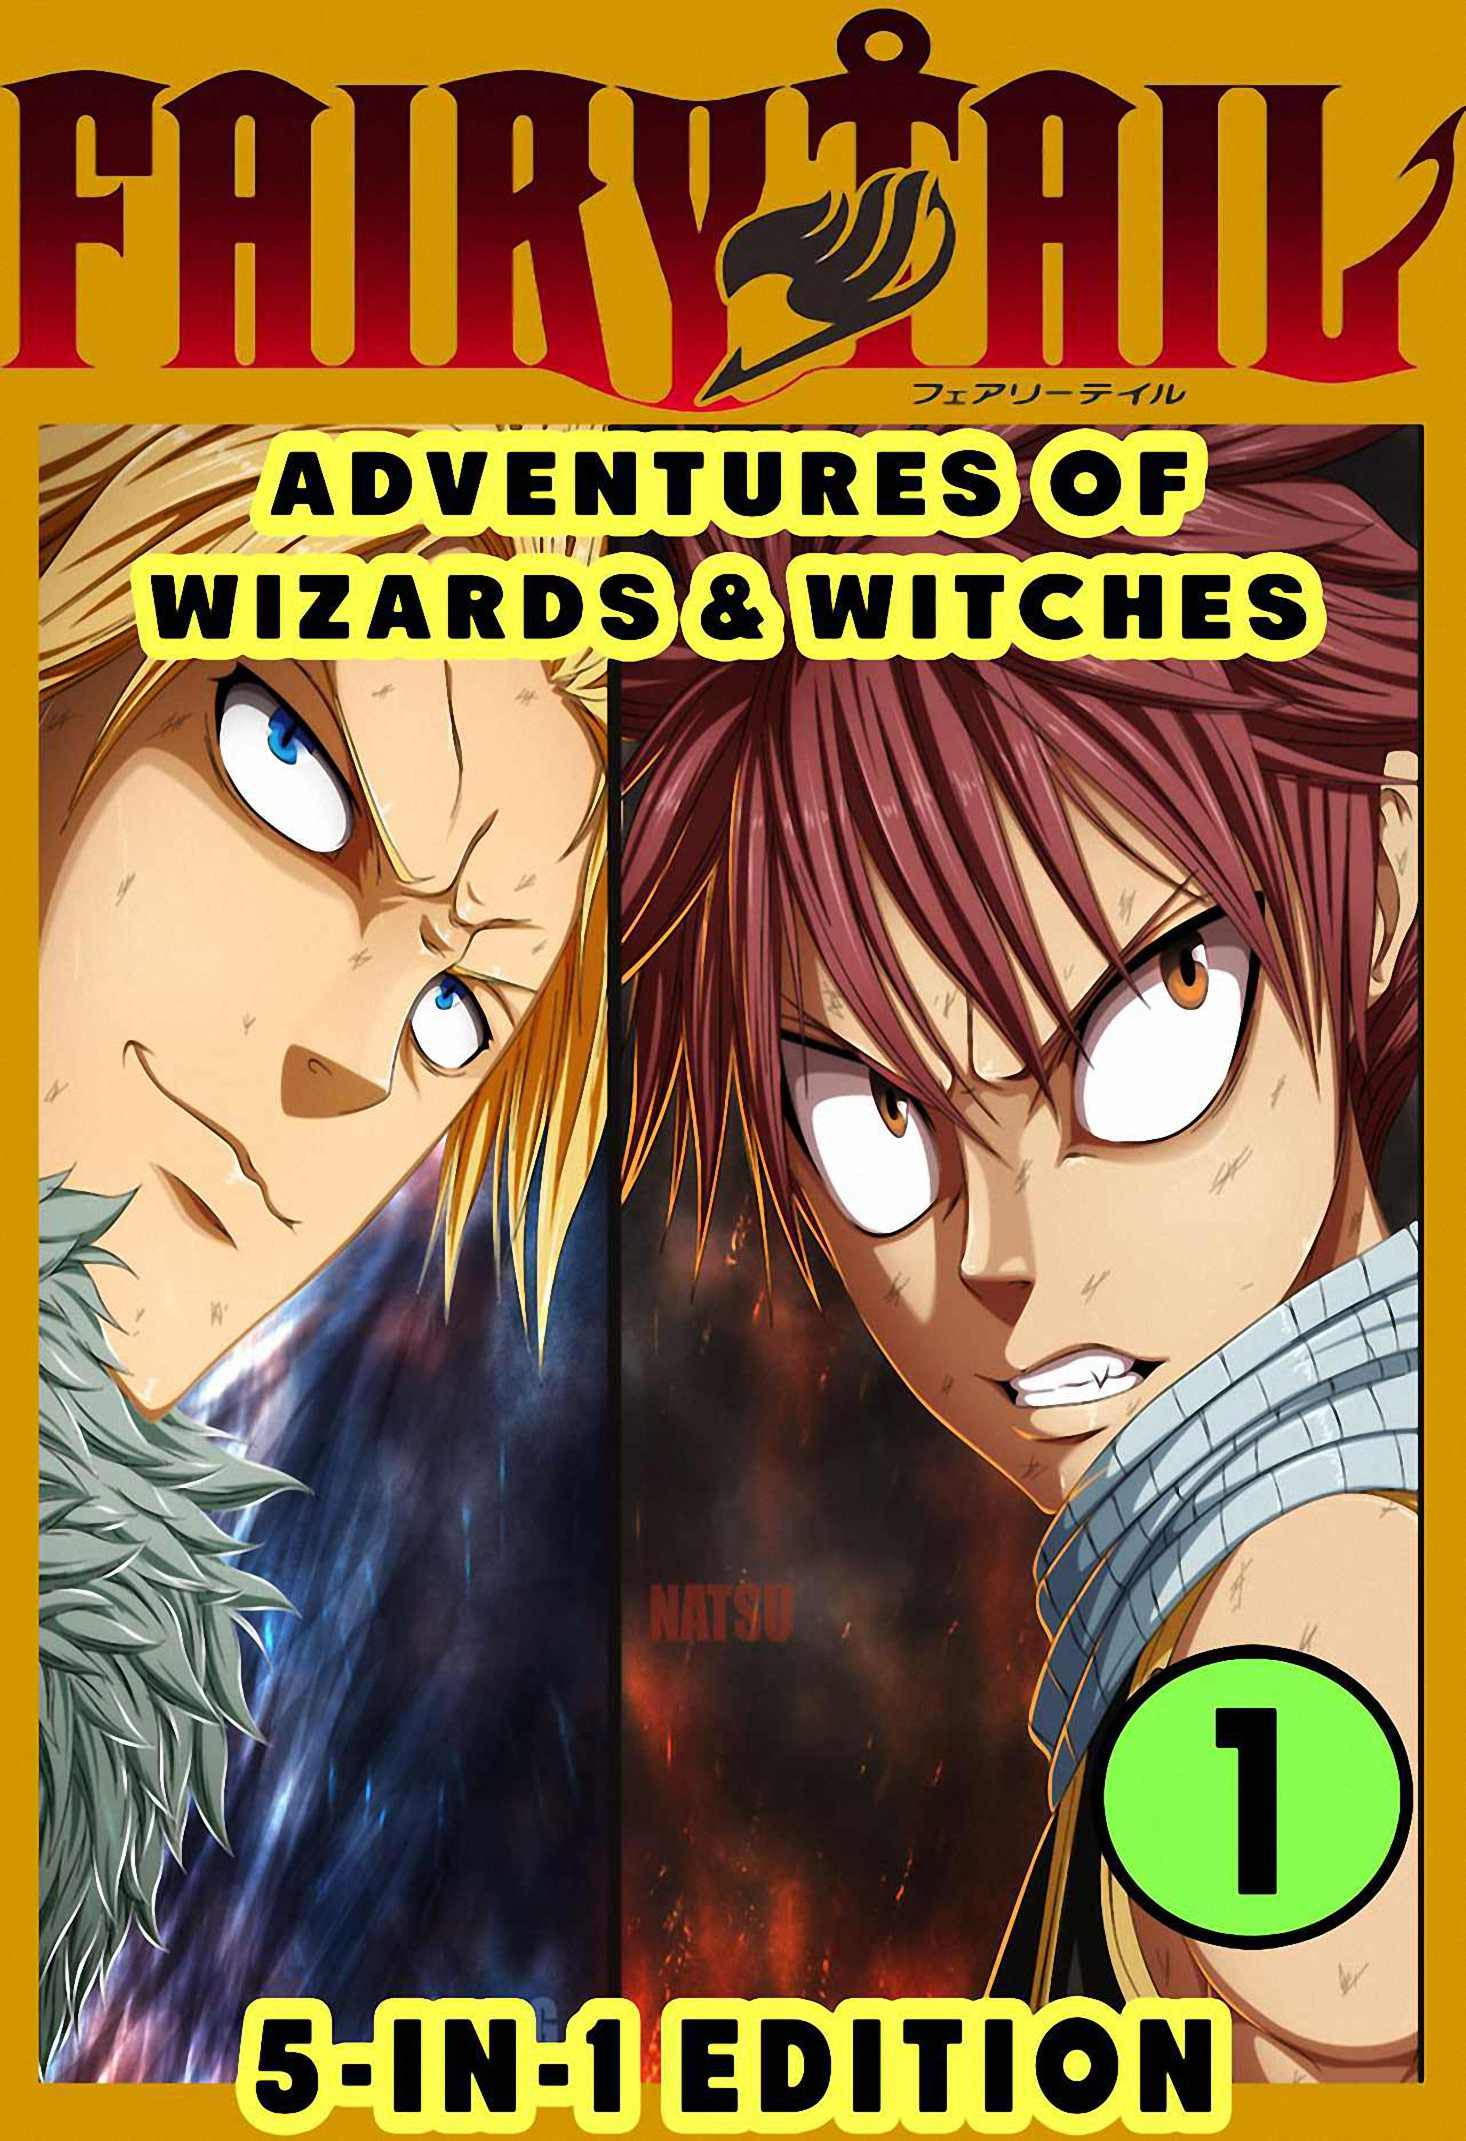 Tail Wizards: Book 1 5-in-1 Edition Fantasy Tail Manga Fairy Action Graphic Novel For Teen